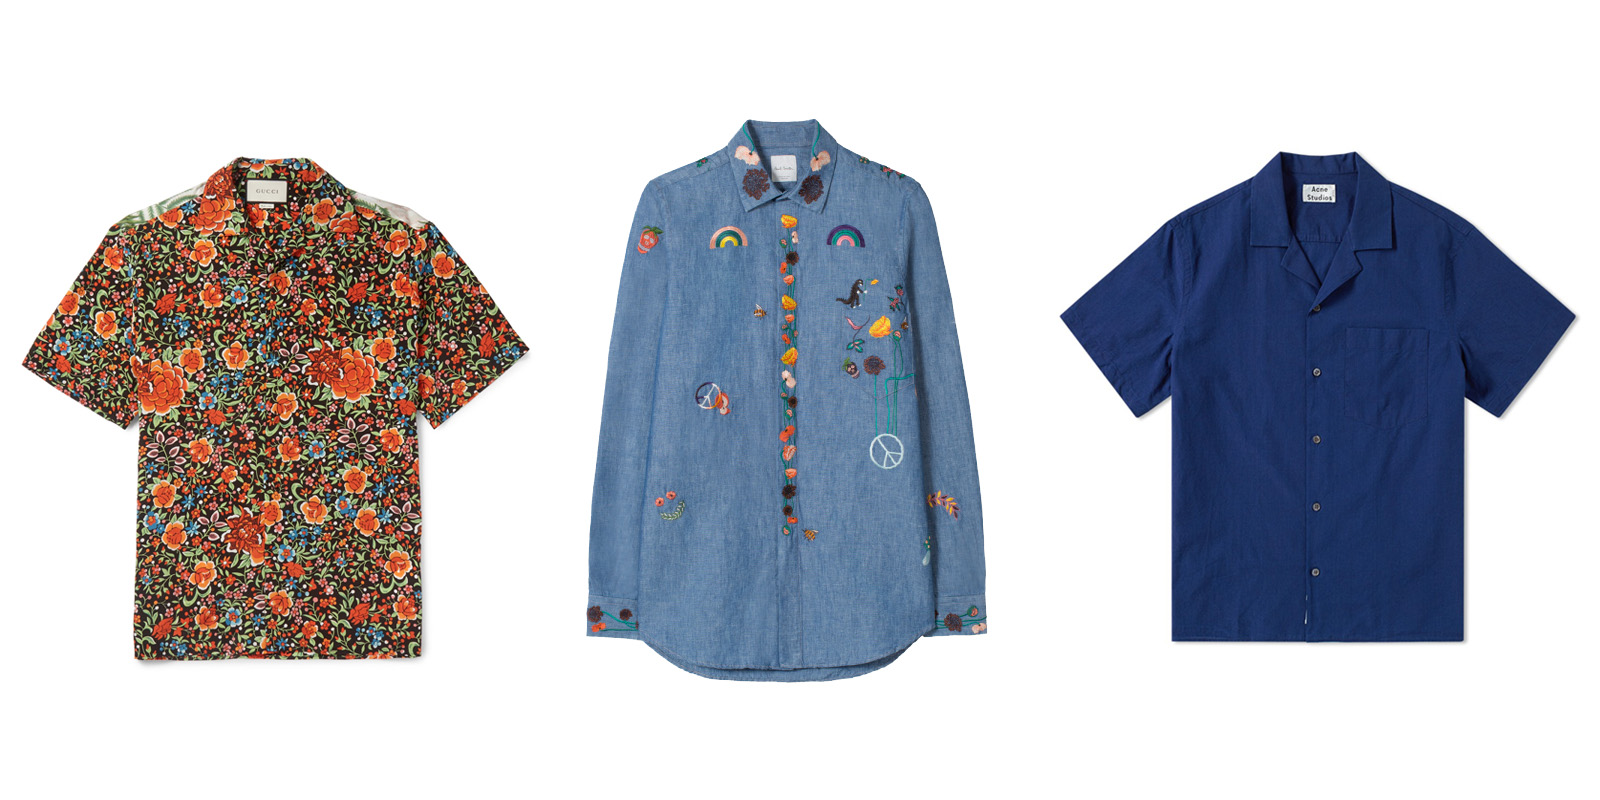 The Best Pattern Shirts of Summer (And How to Wear Them) June 14, Style: Clothing By John Zientek This summer, break away from traditional solid and .